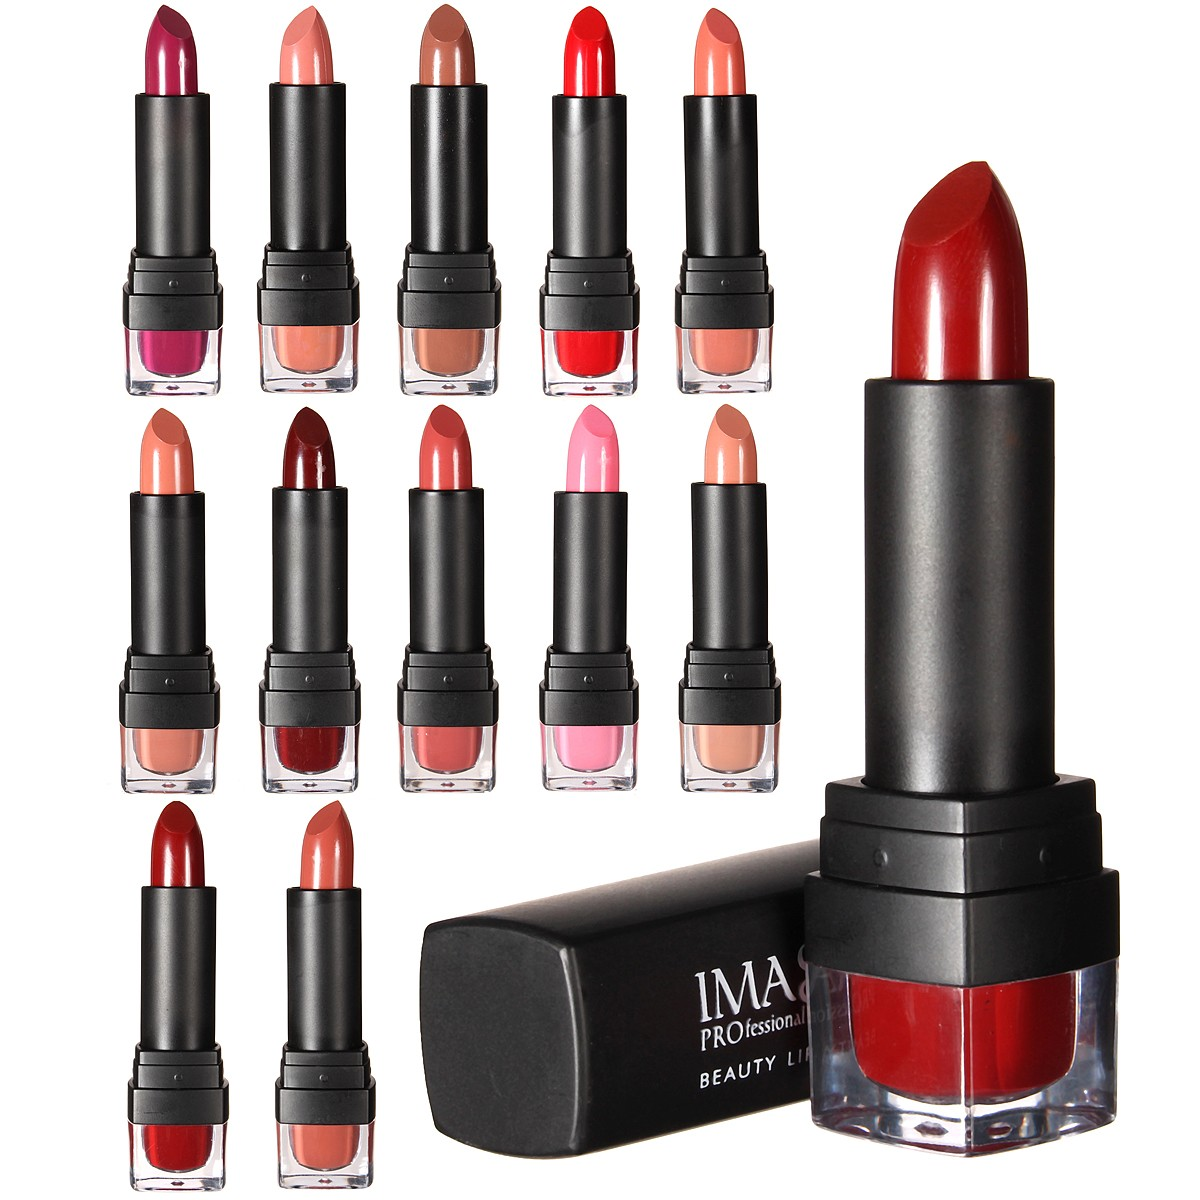 IMAgic 12 Colors Women Lipstick Long Lasting Lip Stick Gloss Beauty Cosmetic Makeup Tool